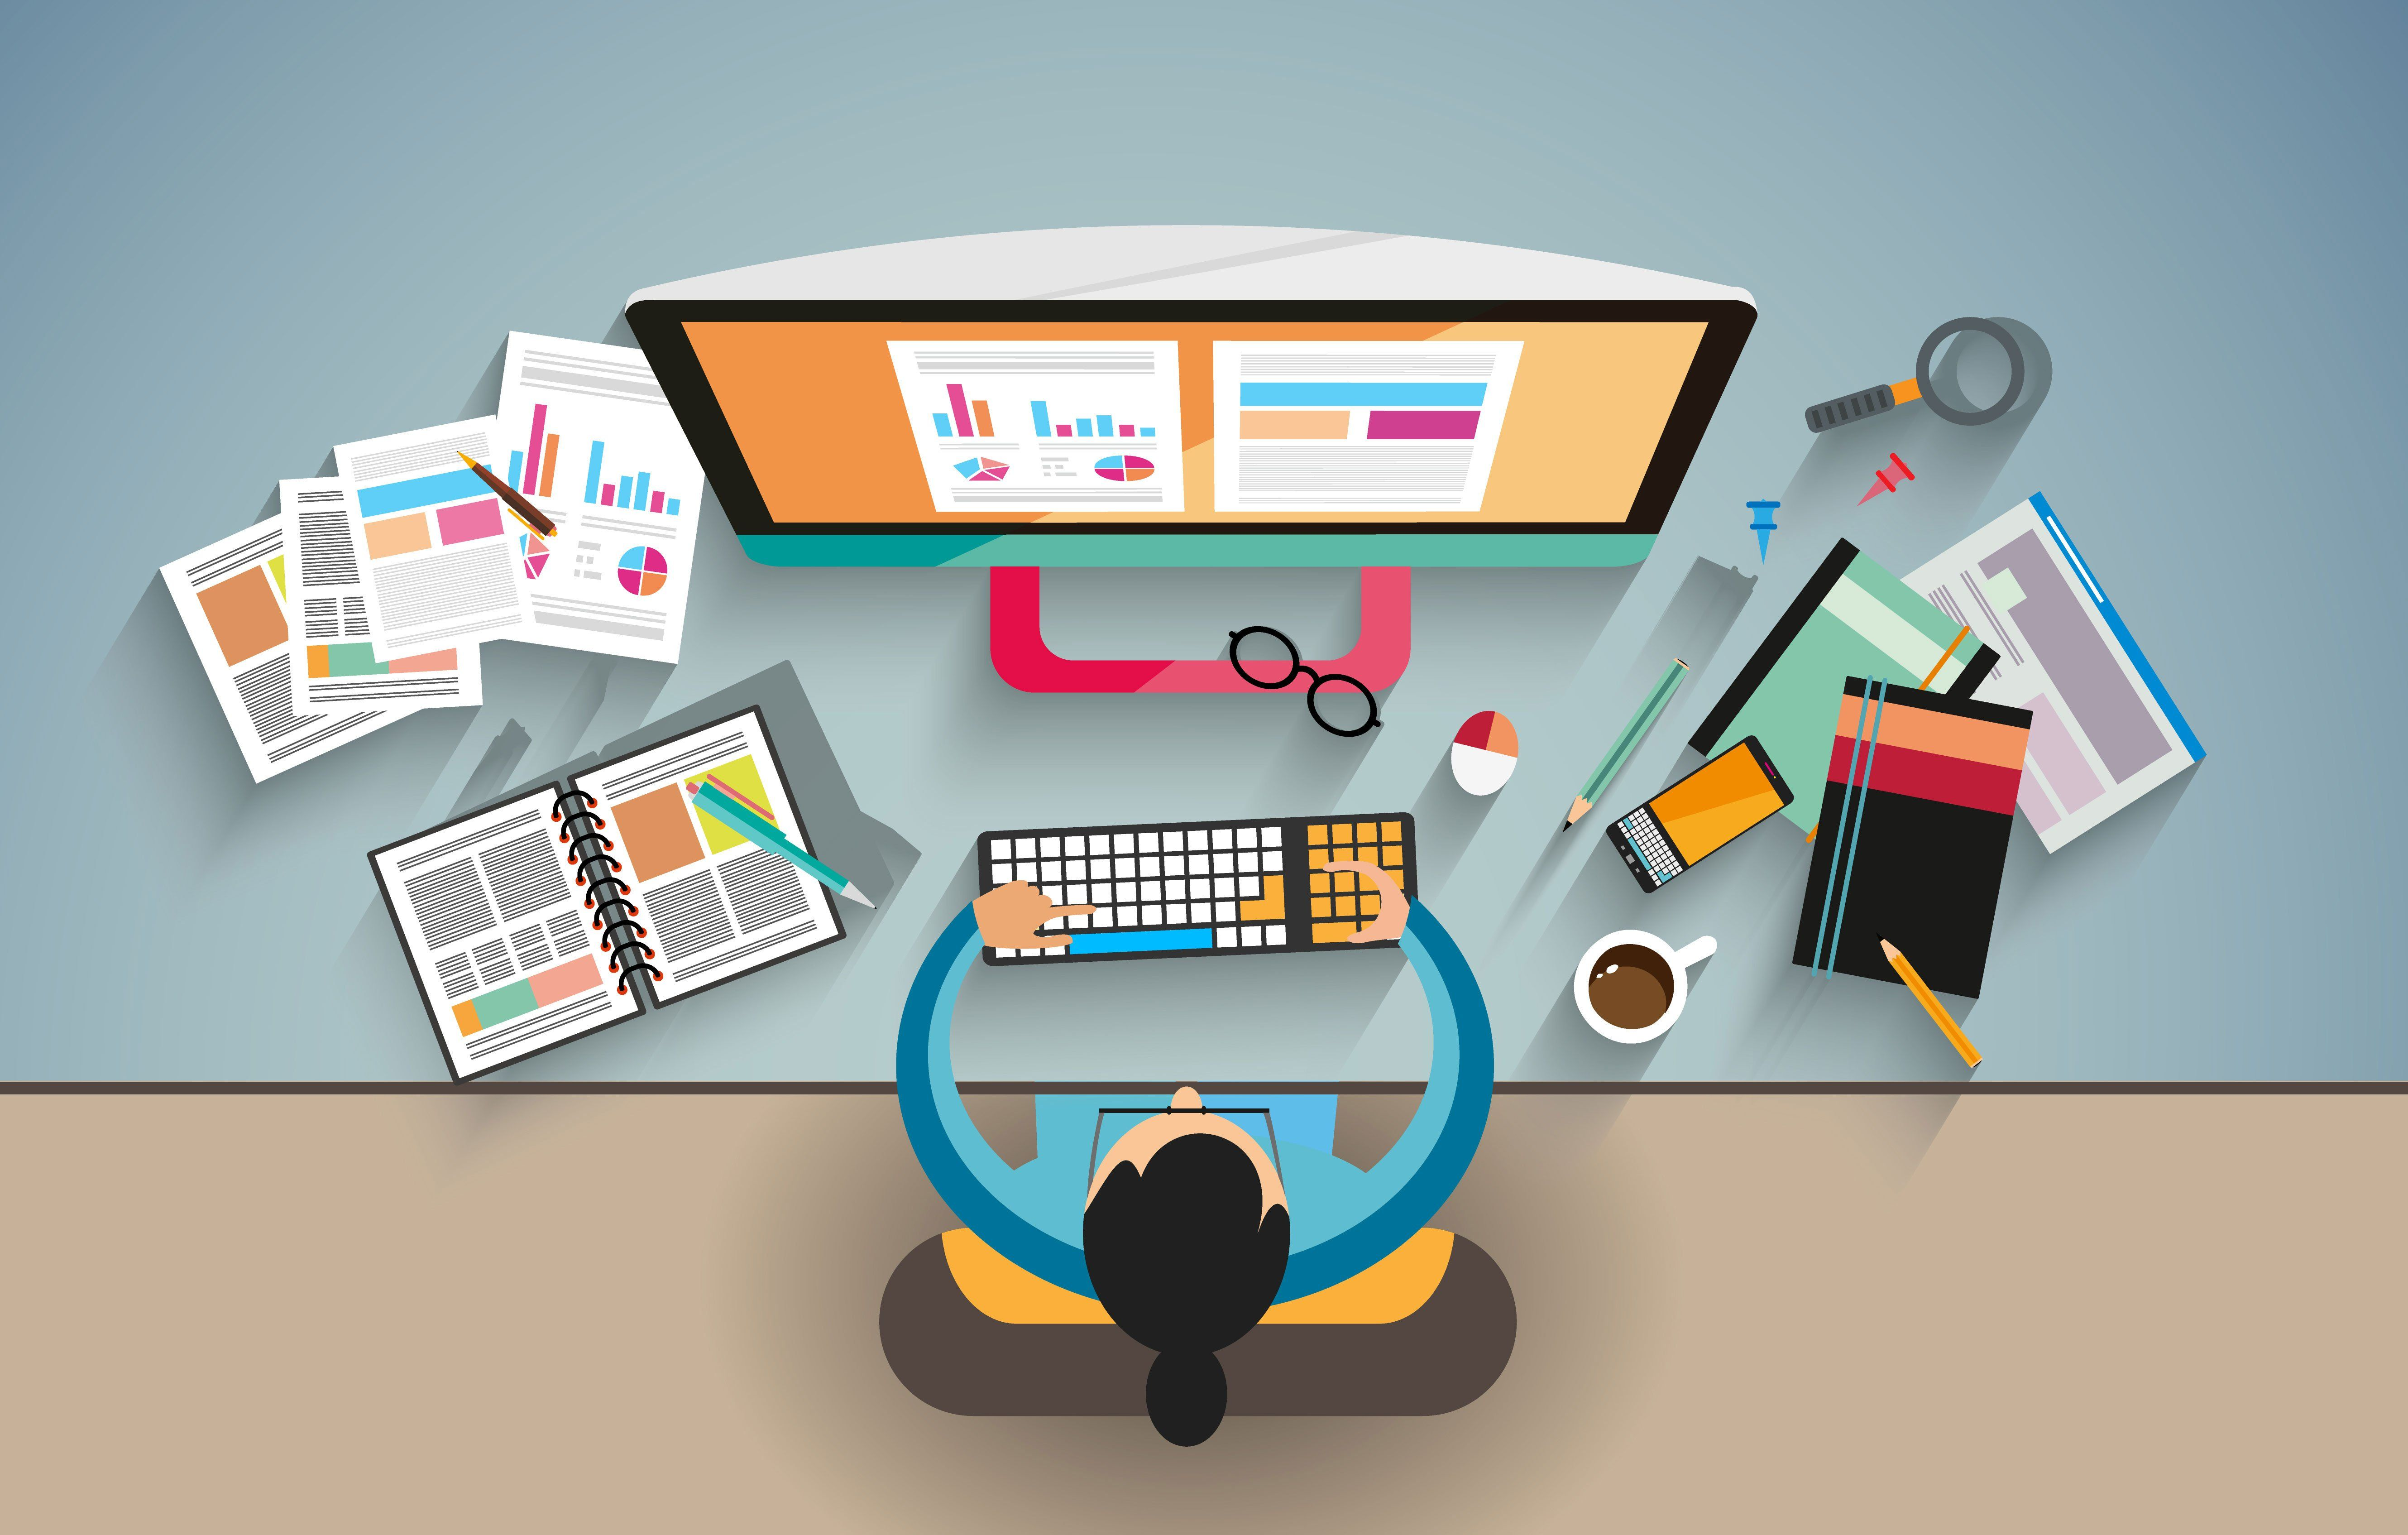 Give Your Business A New Life With The Best Product Design Adelaide In 2020 Web Development Design Website Design Company Web Design Services